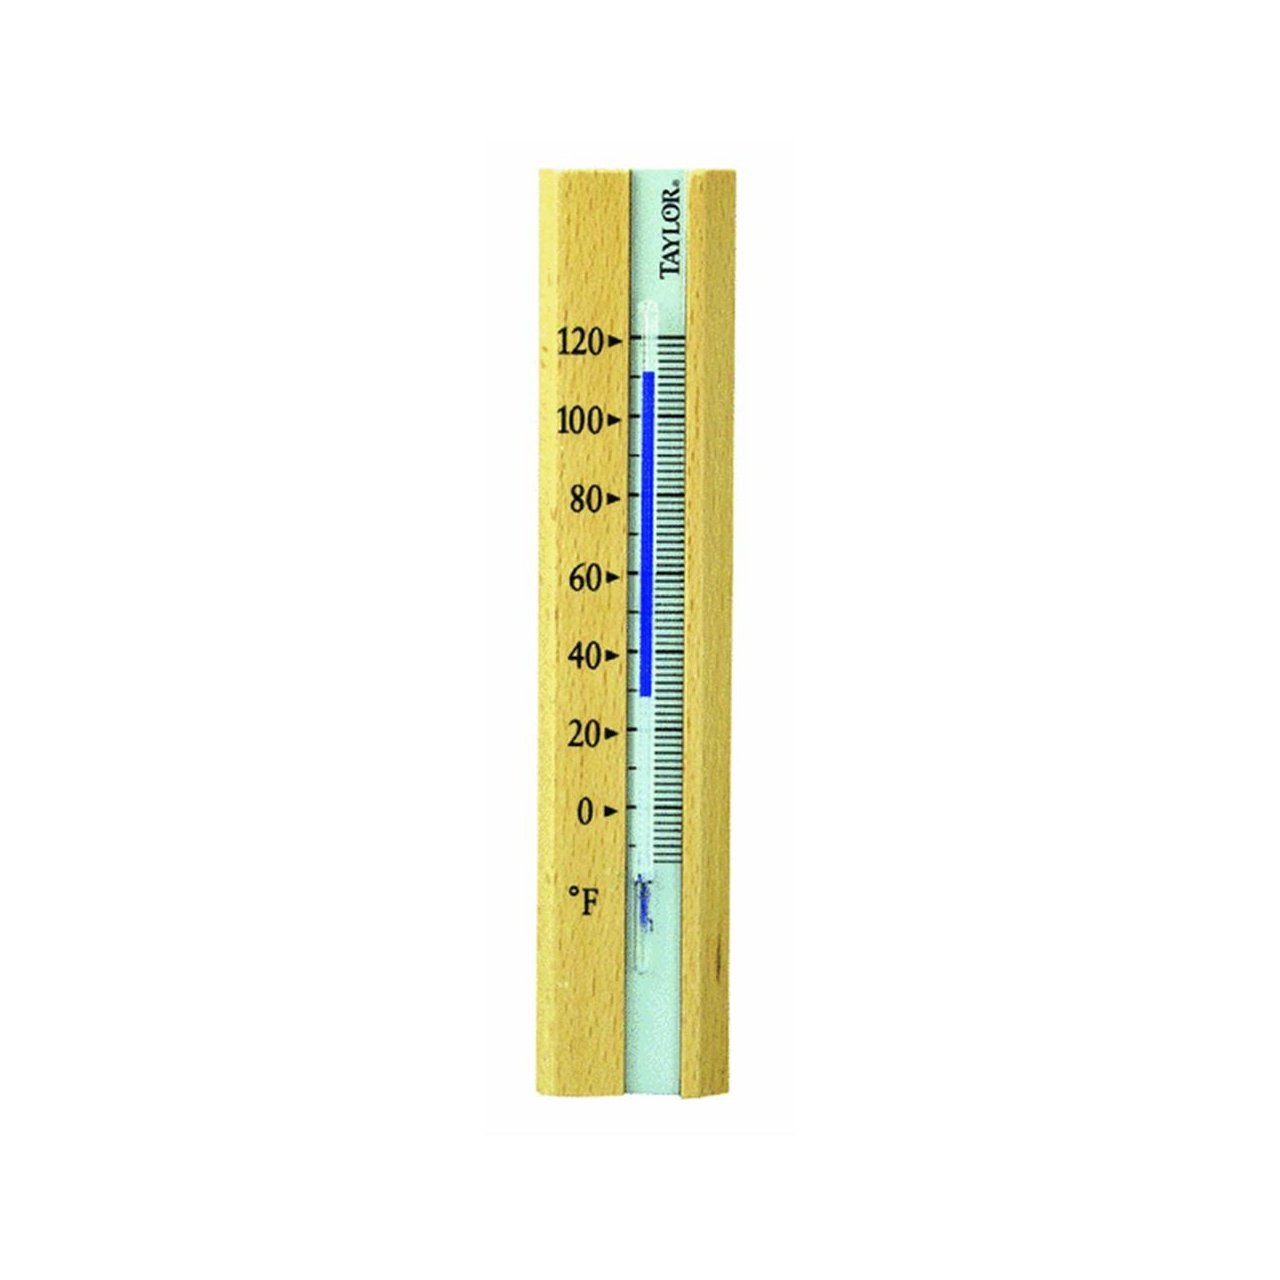 Amazon.com: Taylor Precision 5141 Wood Indoor Window Thermometer ...